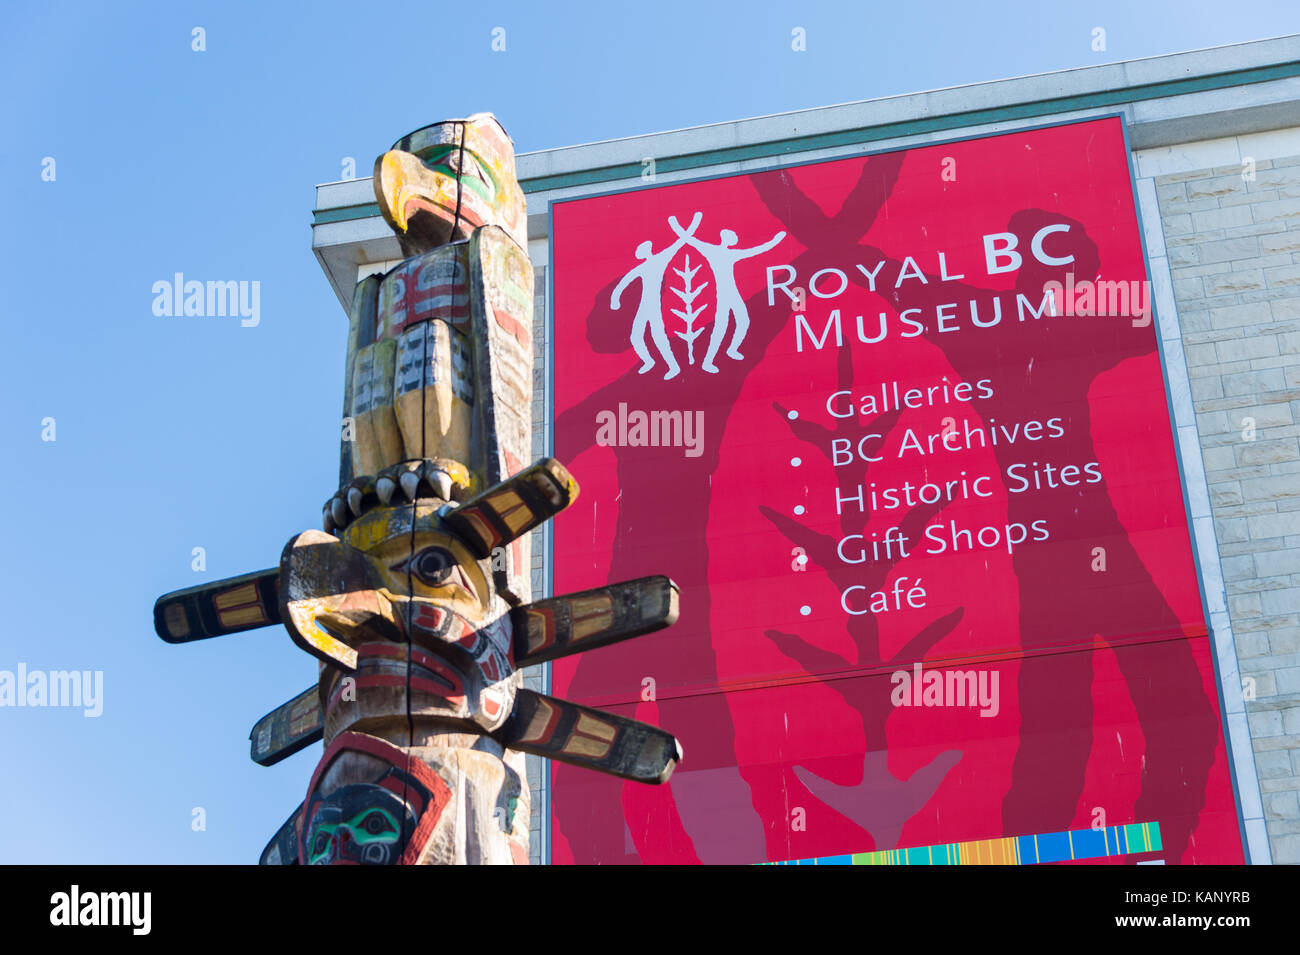 Victoria, BC, Canada - 11 September 2017: Facade of the Royal BC Museum with a totem pole in the foreground - Stock Image